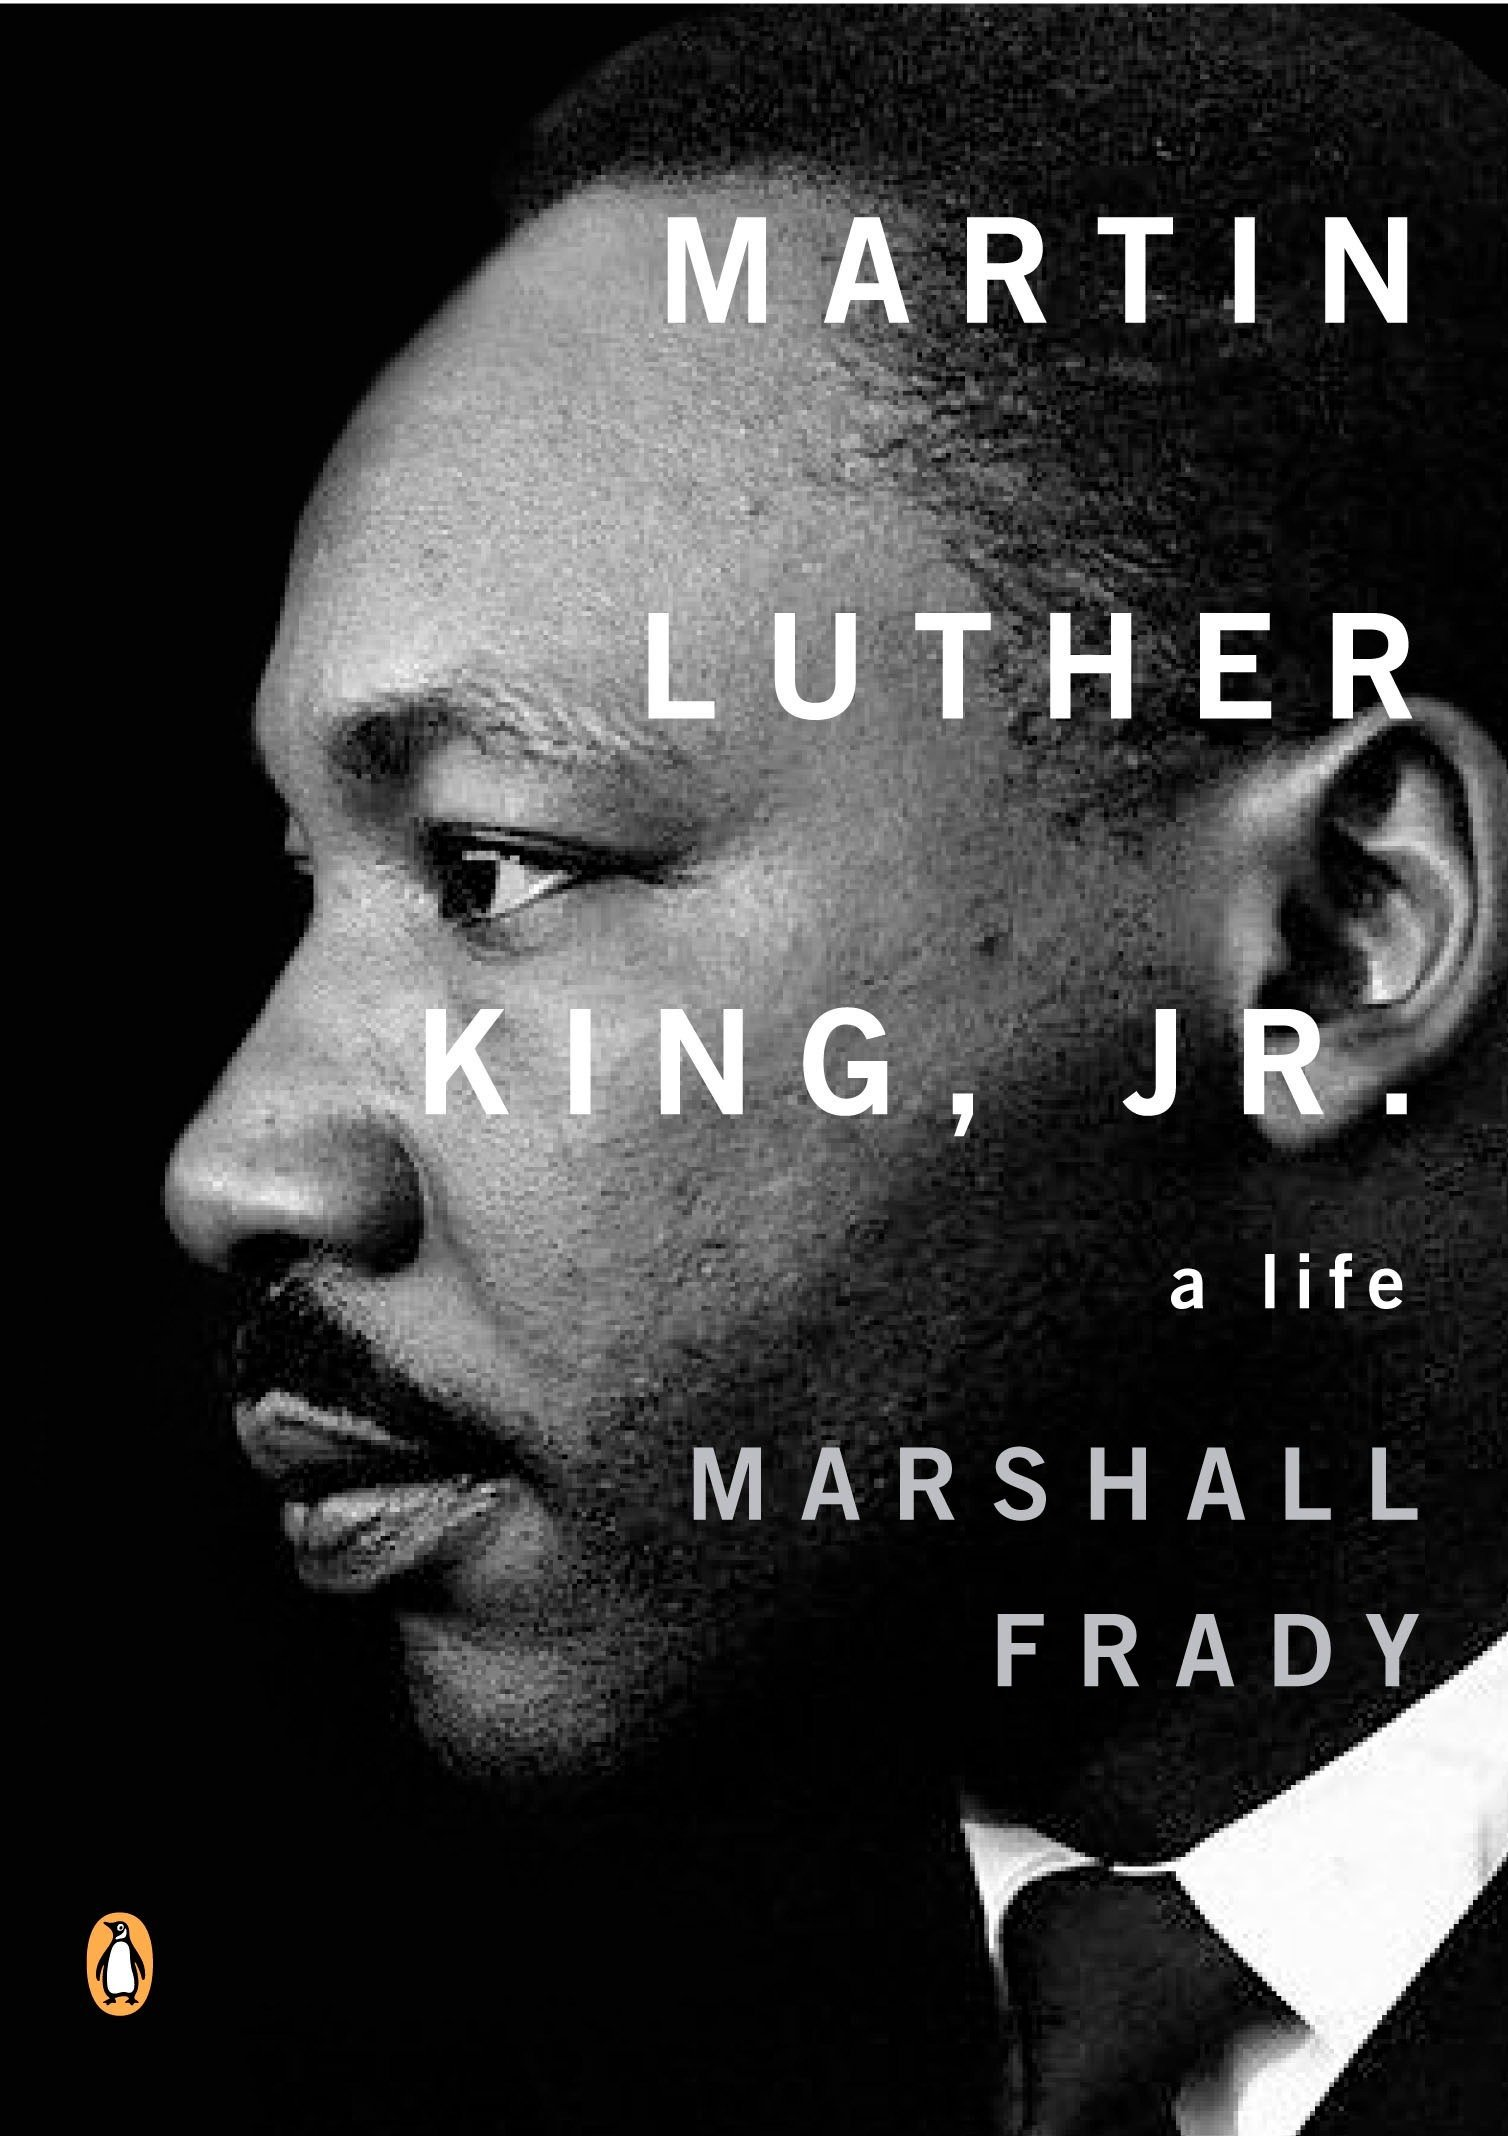 Martin Luther King Jr. Bookcover.jpg